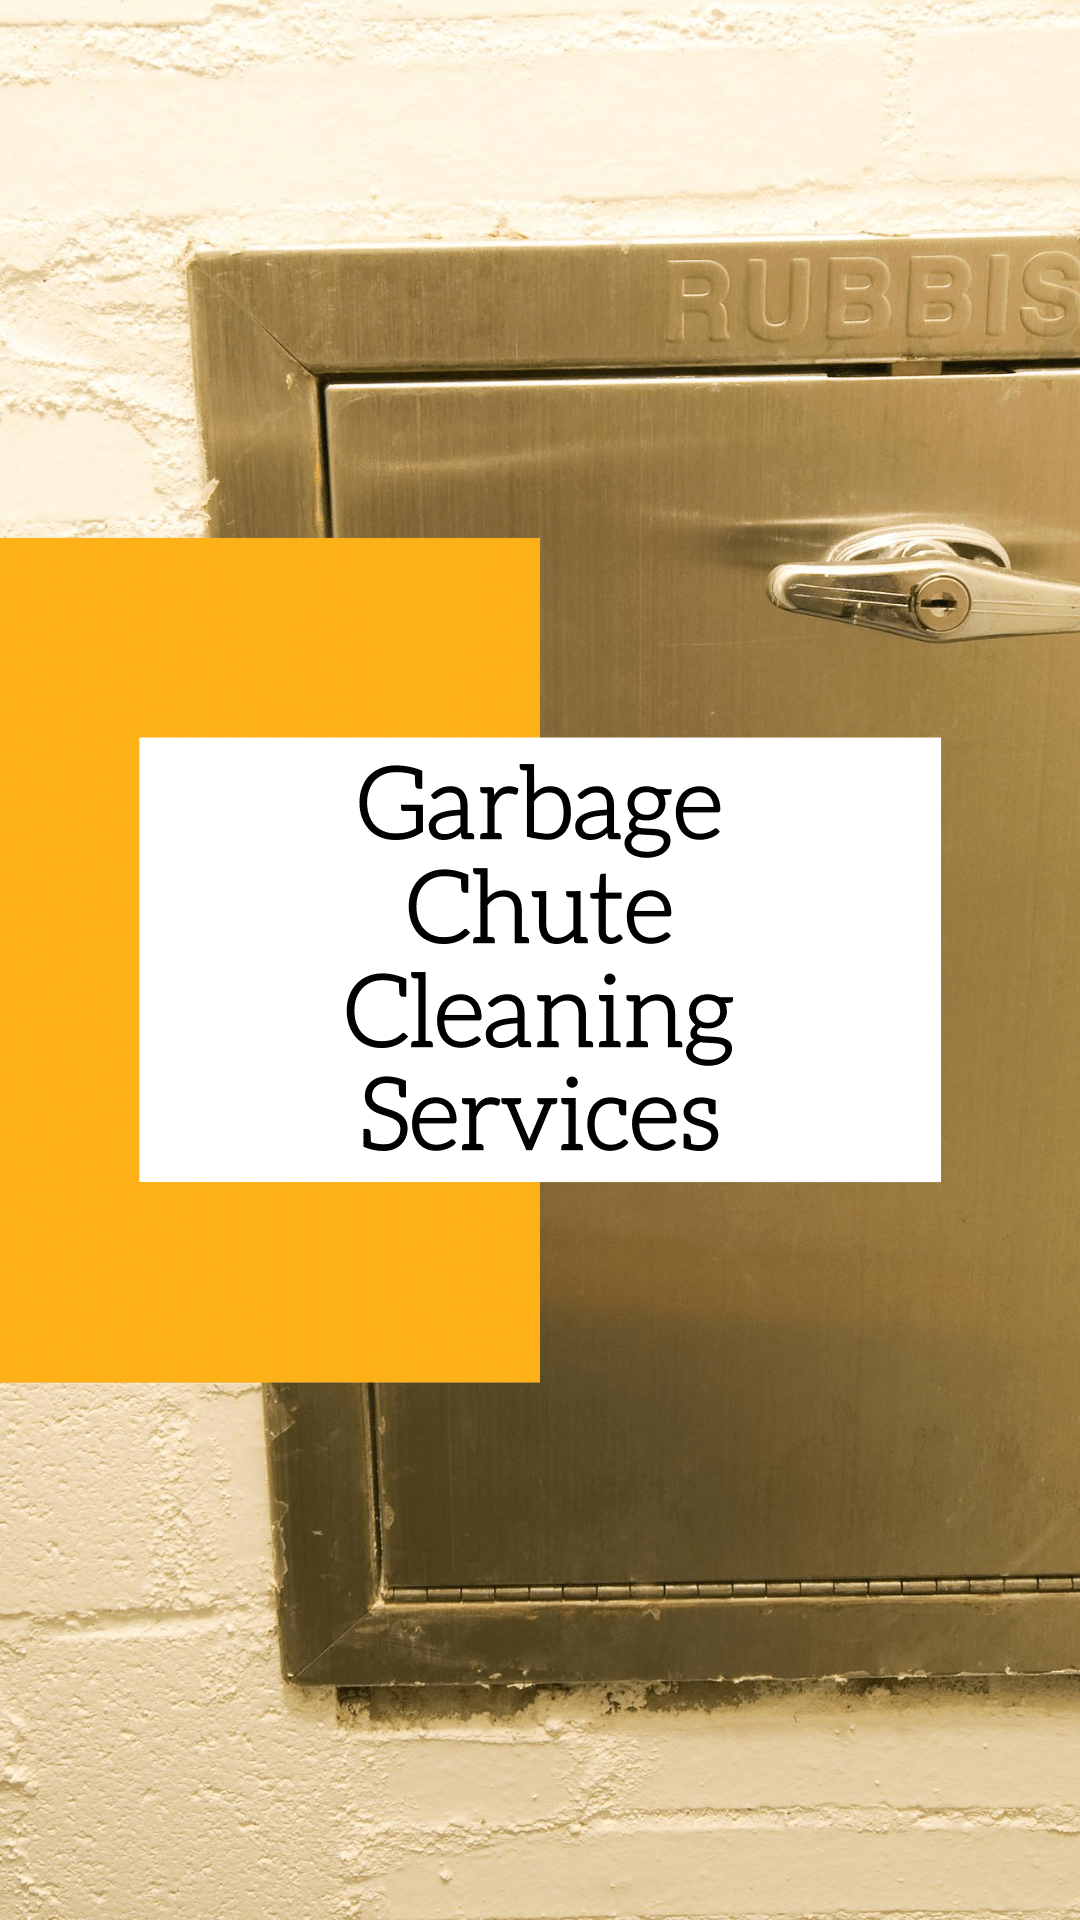 Garbage chute cleaning and repairs